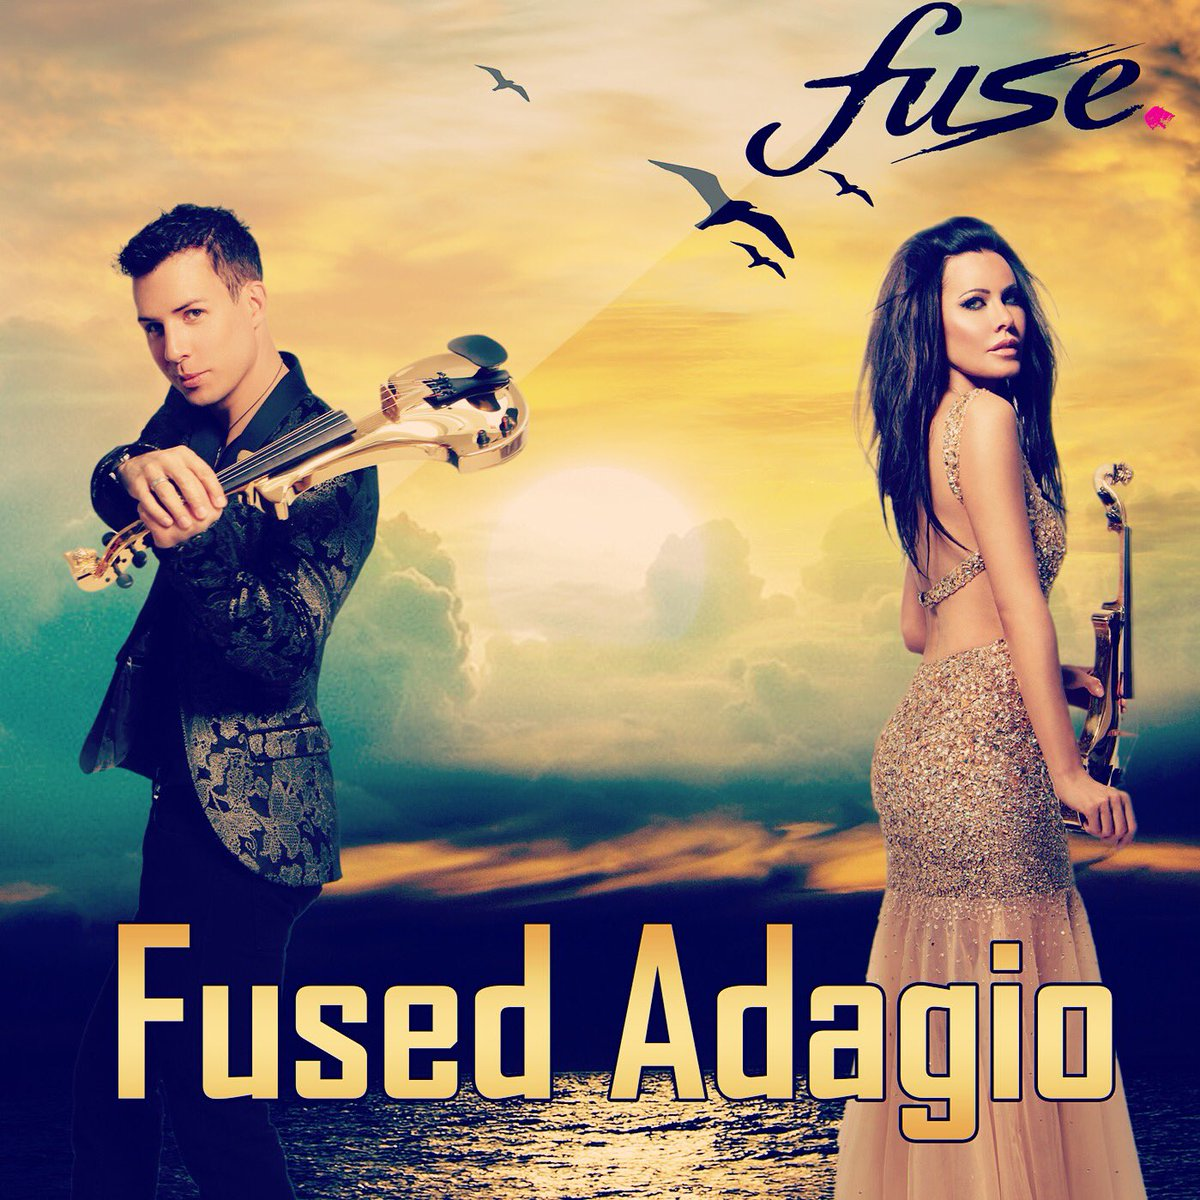 New music arriving today Fused Adagio on CD Baby